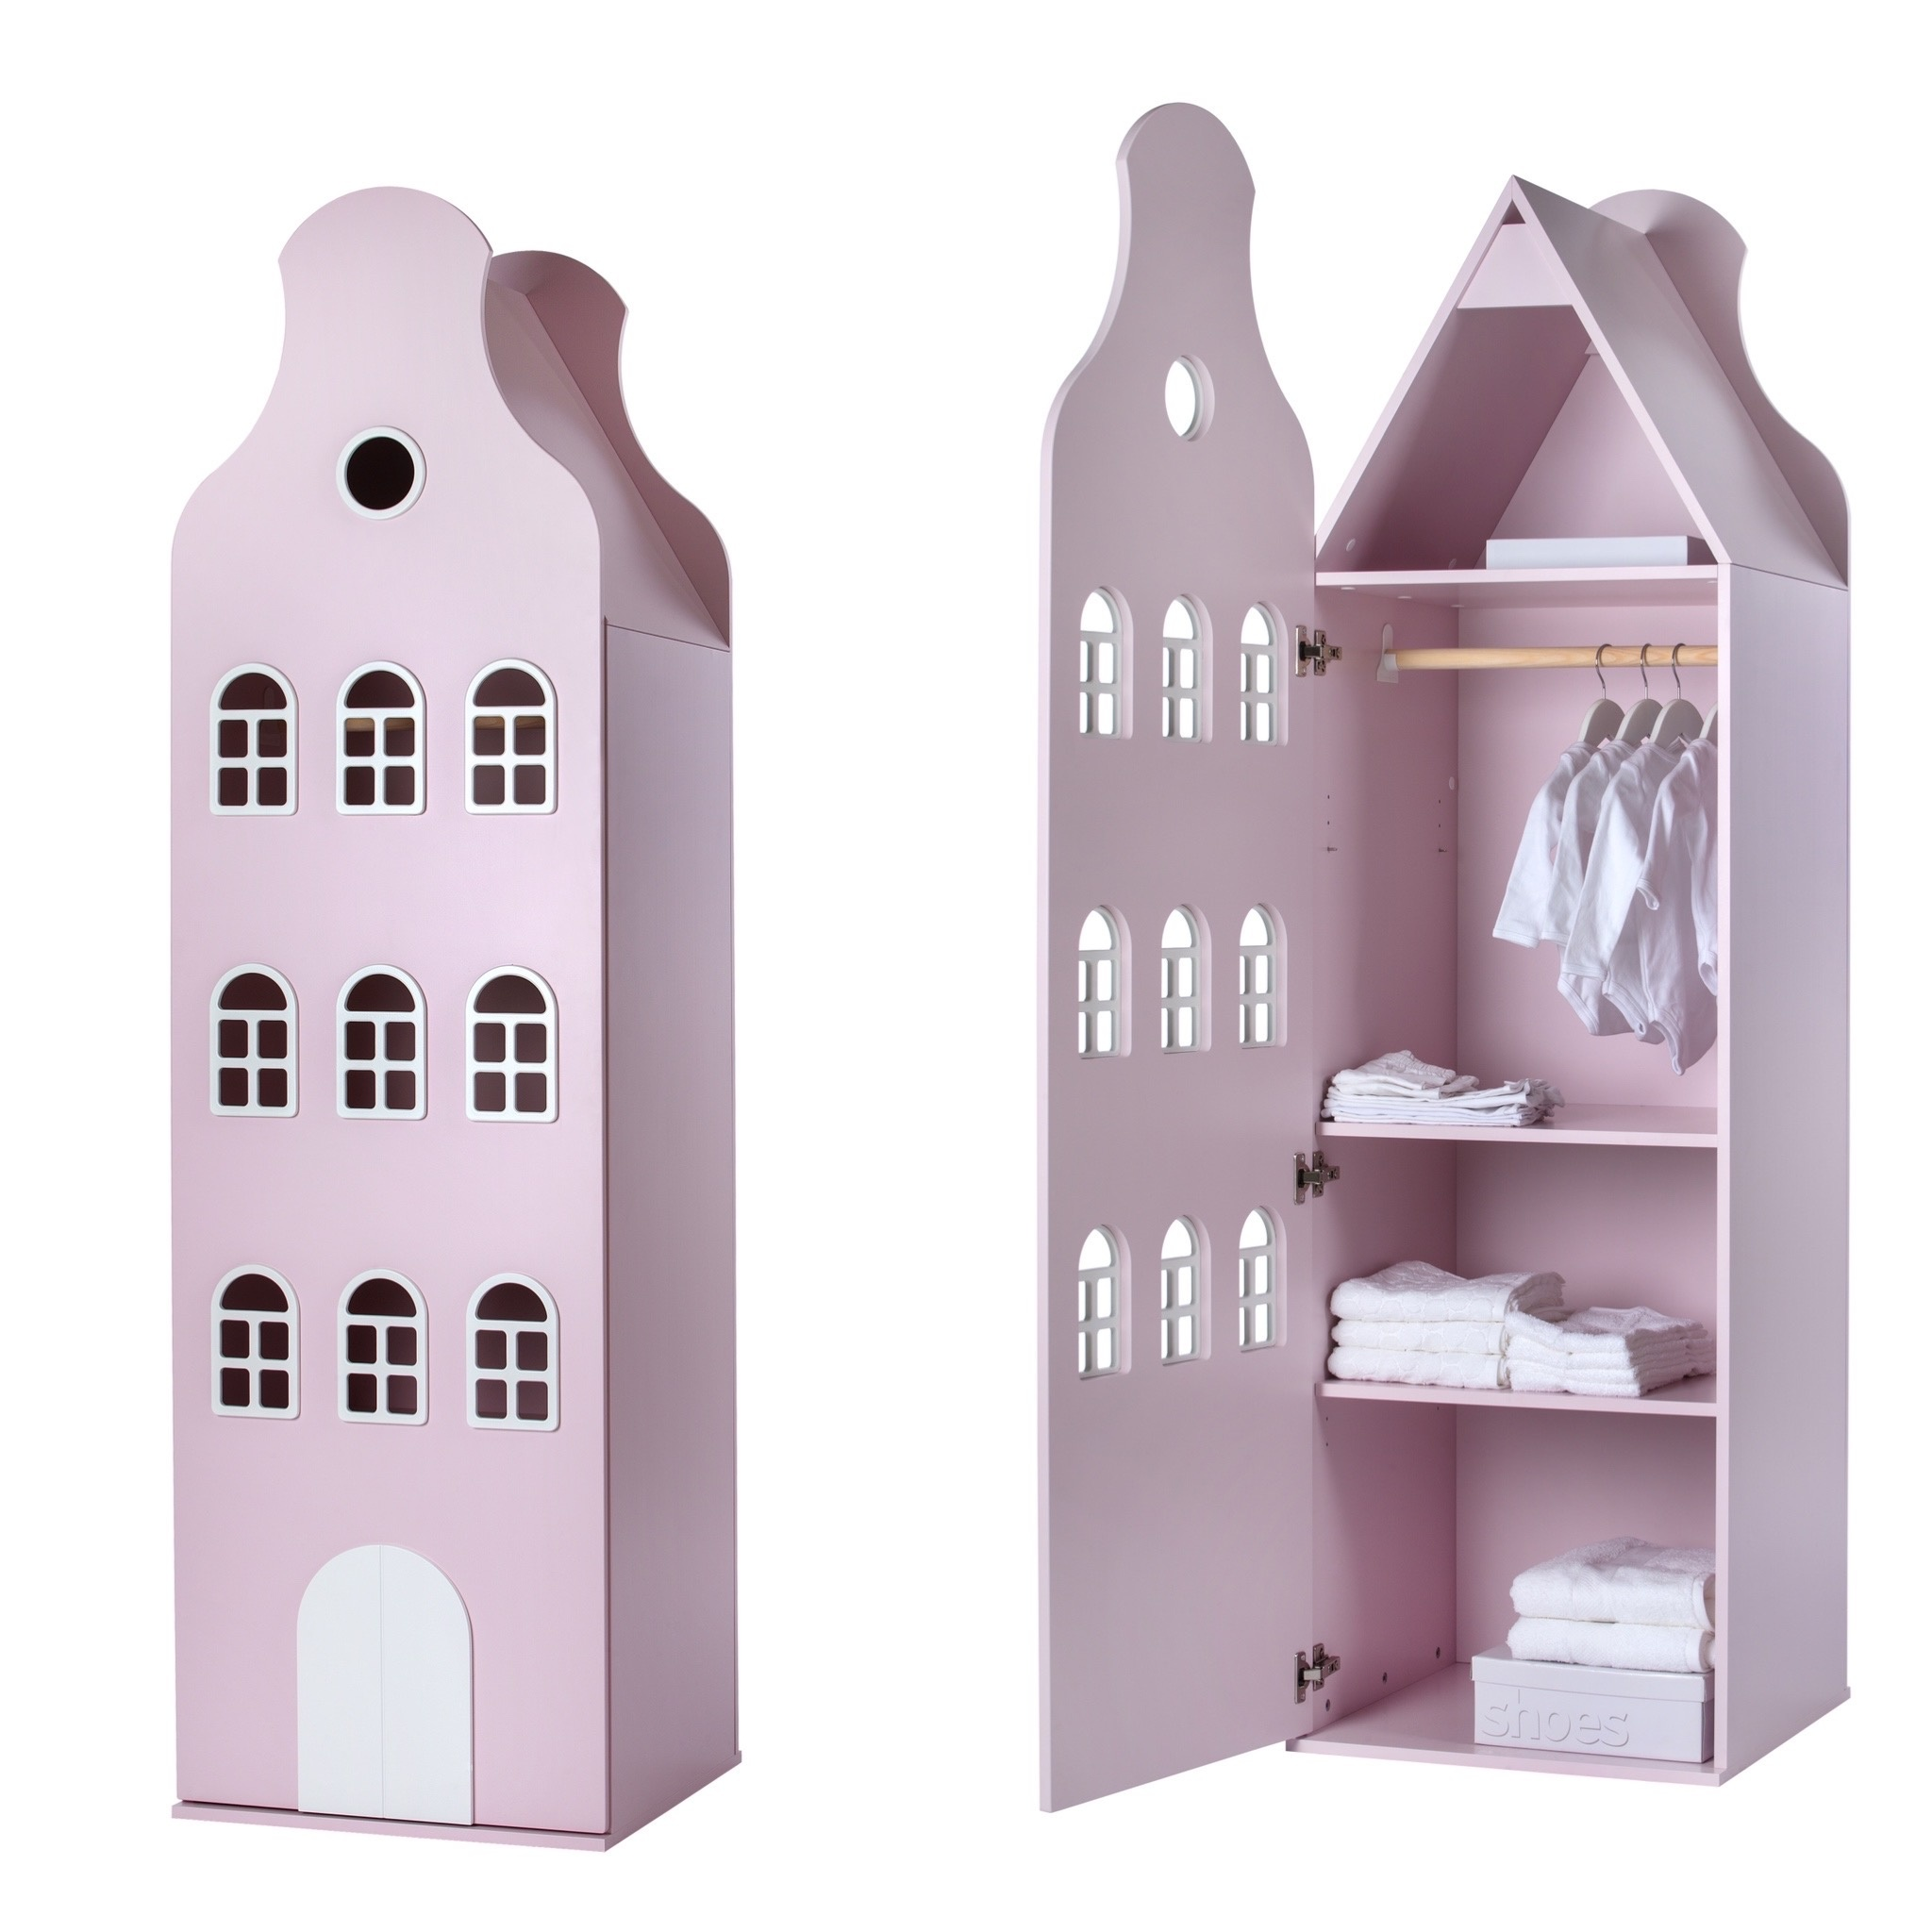 Cabinet Amsterdam Bellgable, XL 216/60/60 cm. All colors.-1